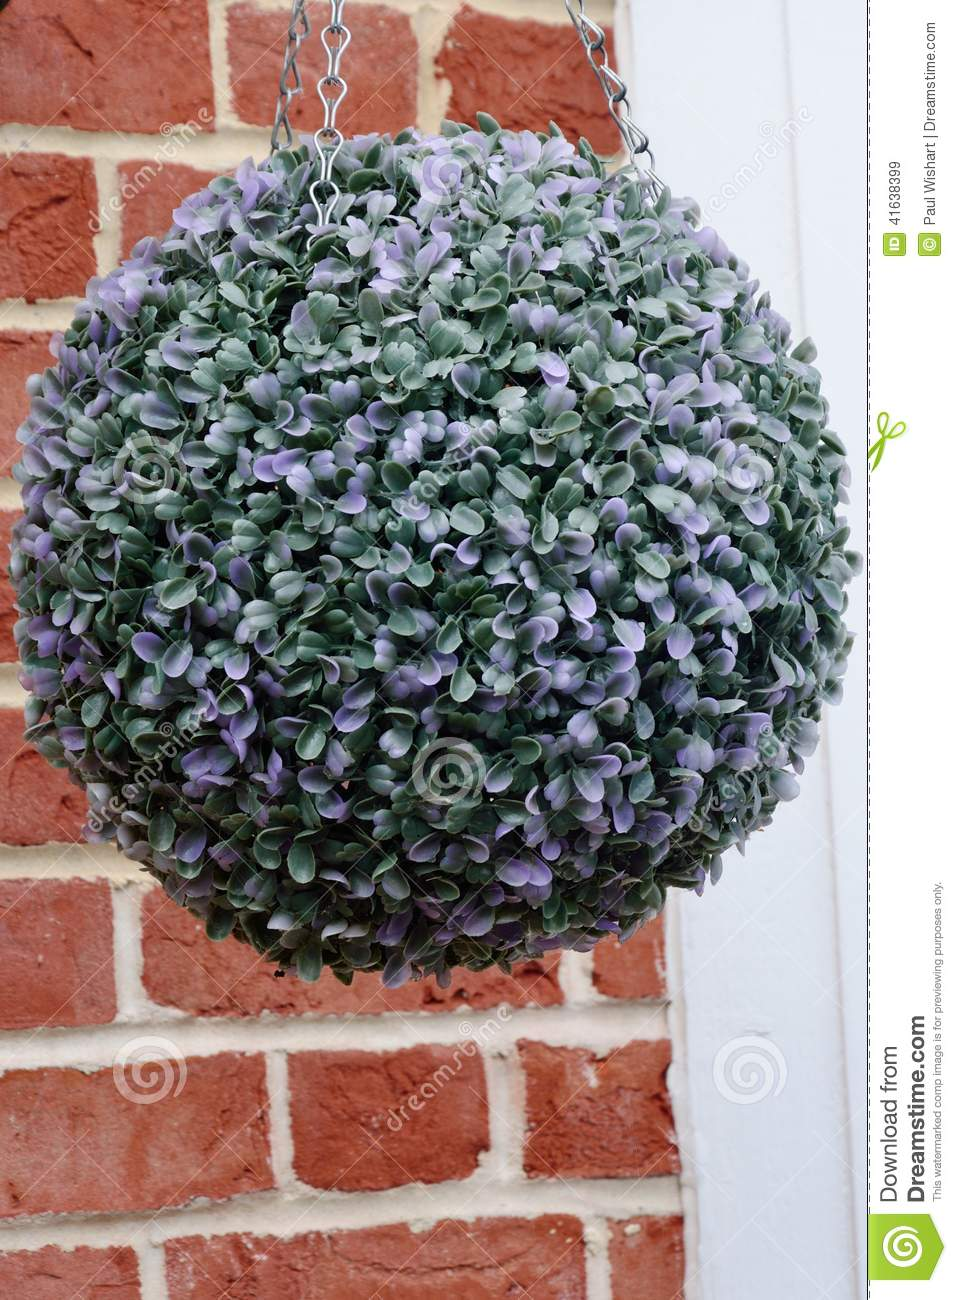 How To Make Round Hanging Flower Baskets : Round hanging basket plant stock image of